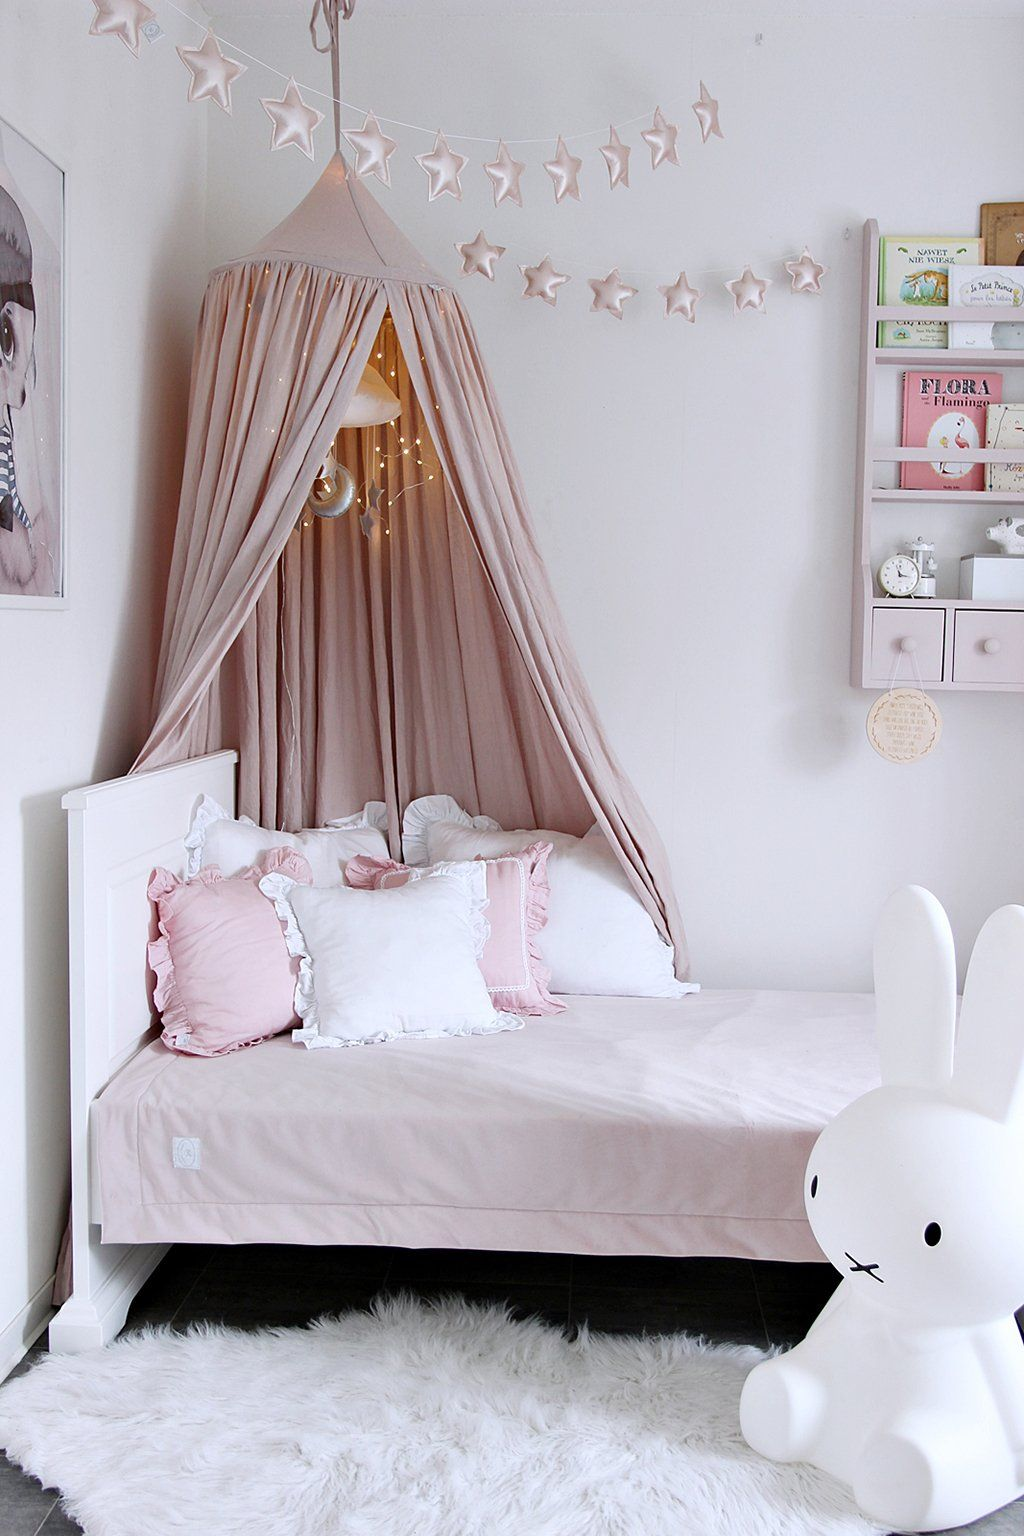 This super soft canopy is made from 100% linen Itu0027s antibacterial anti-fungal and antiallergic itu0027s perfect for children. Looks beautifully when is hang ... & Linen Canopy - Powder Pink | Breau0027s bedroom | Pinterest | Bedroom ...